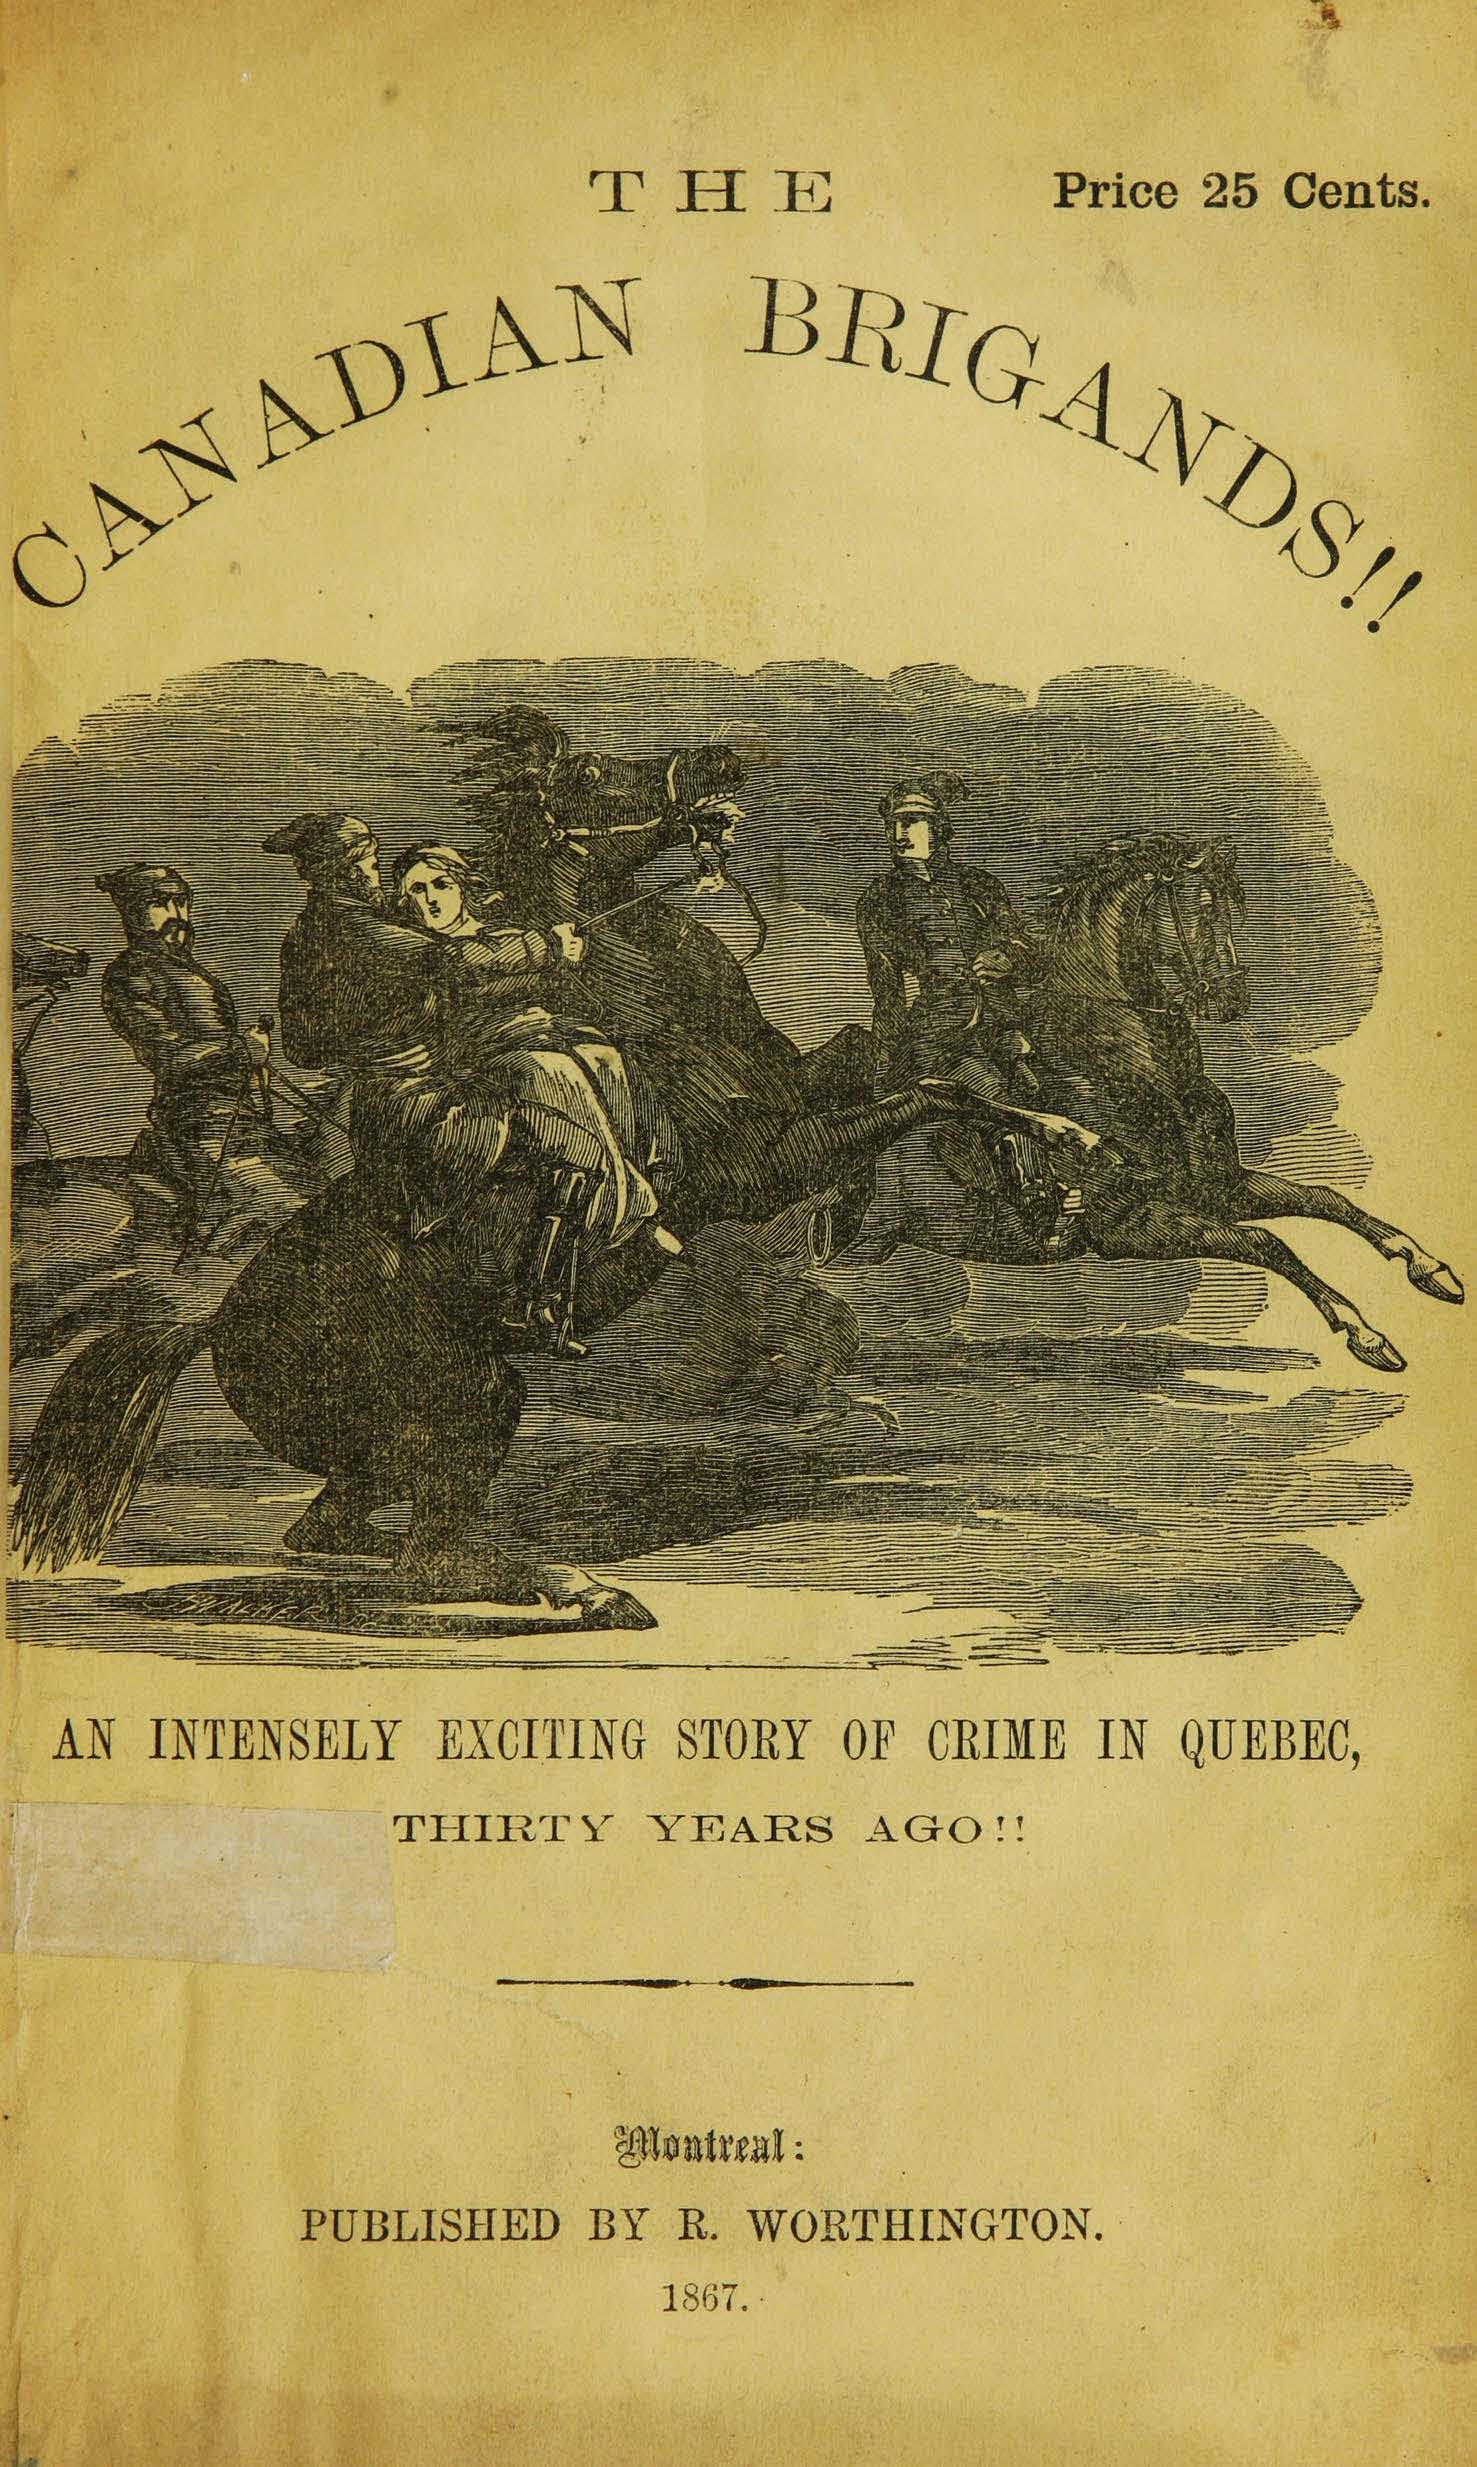 Front piece of The Canadian brigands: An intensely exciting story of crime in Quebec thirty years ago. (1867).